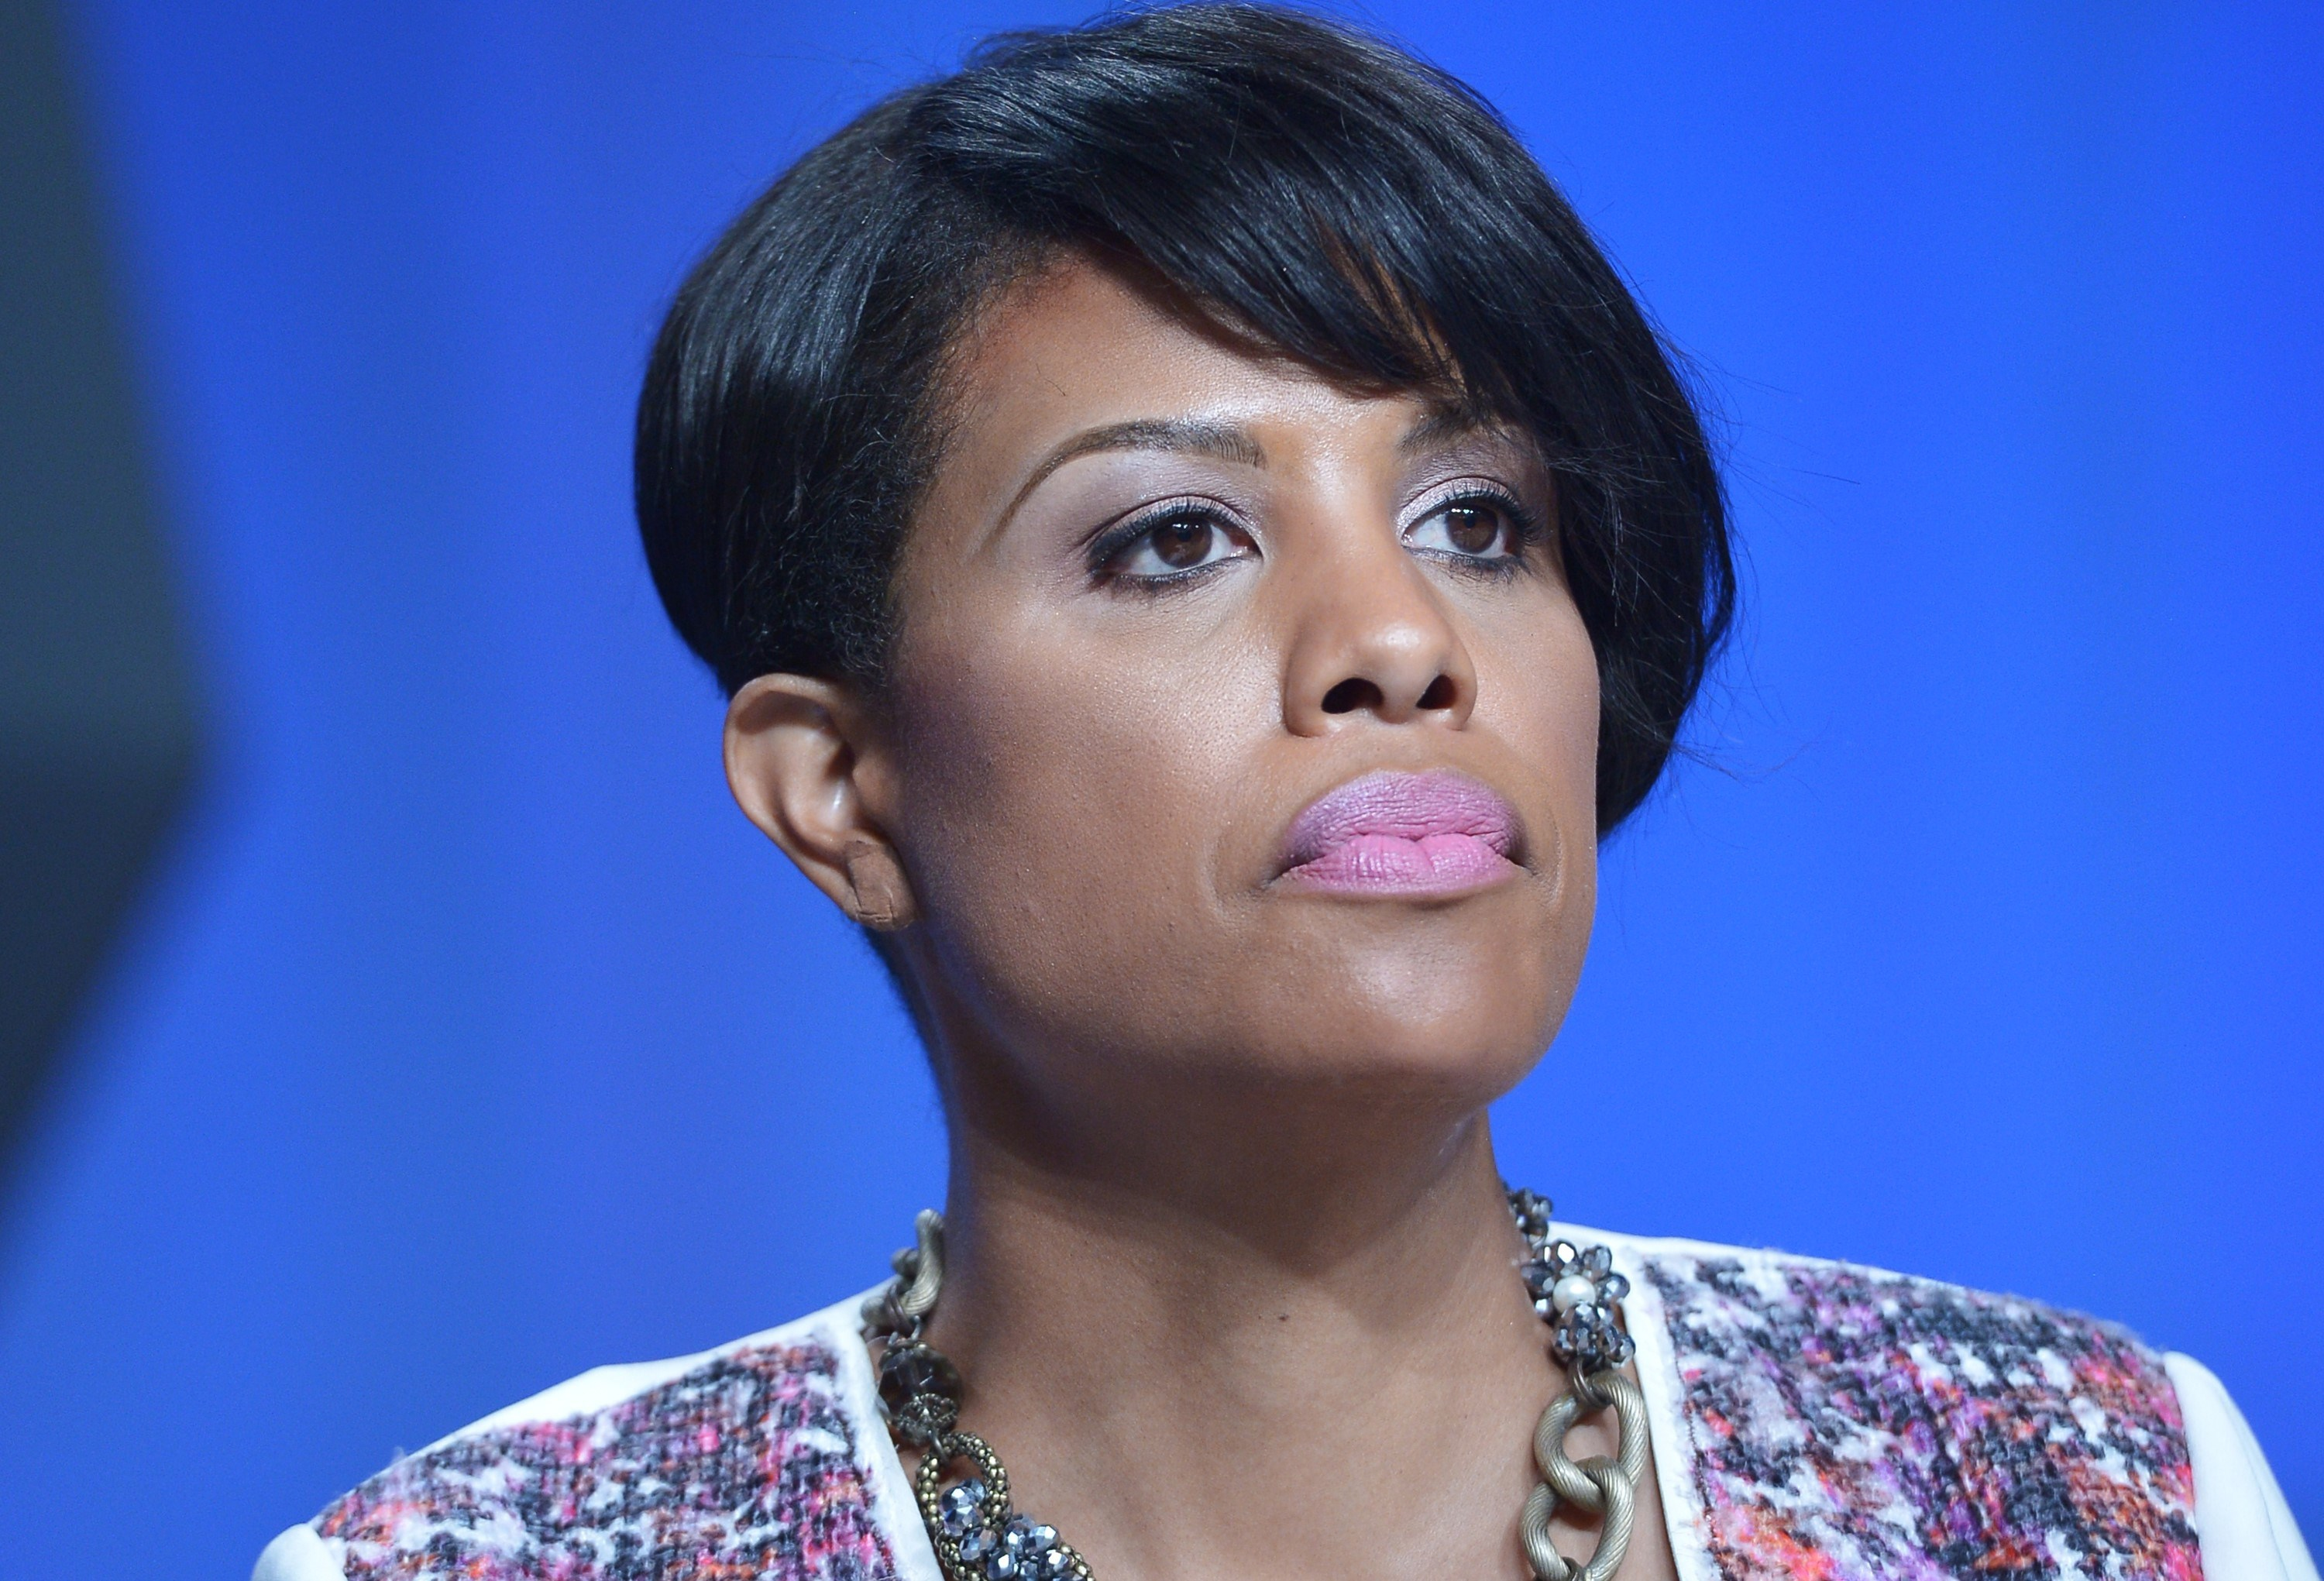 US Conference of Mayors Vice President, Stephanie Rawlings-Blake, of Baltimore, Maryland is seated before an address by US President Barack Obama to the US Conference of Mayors during their annual meeting at a hotel in San Francisco, California on June 19, 2015.